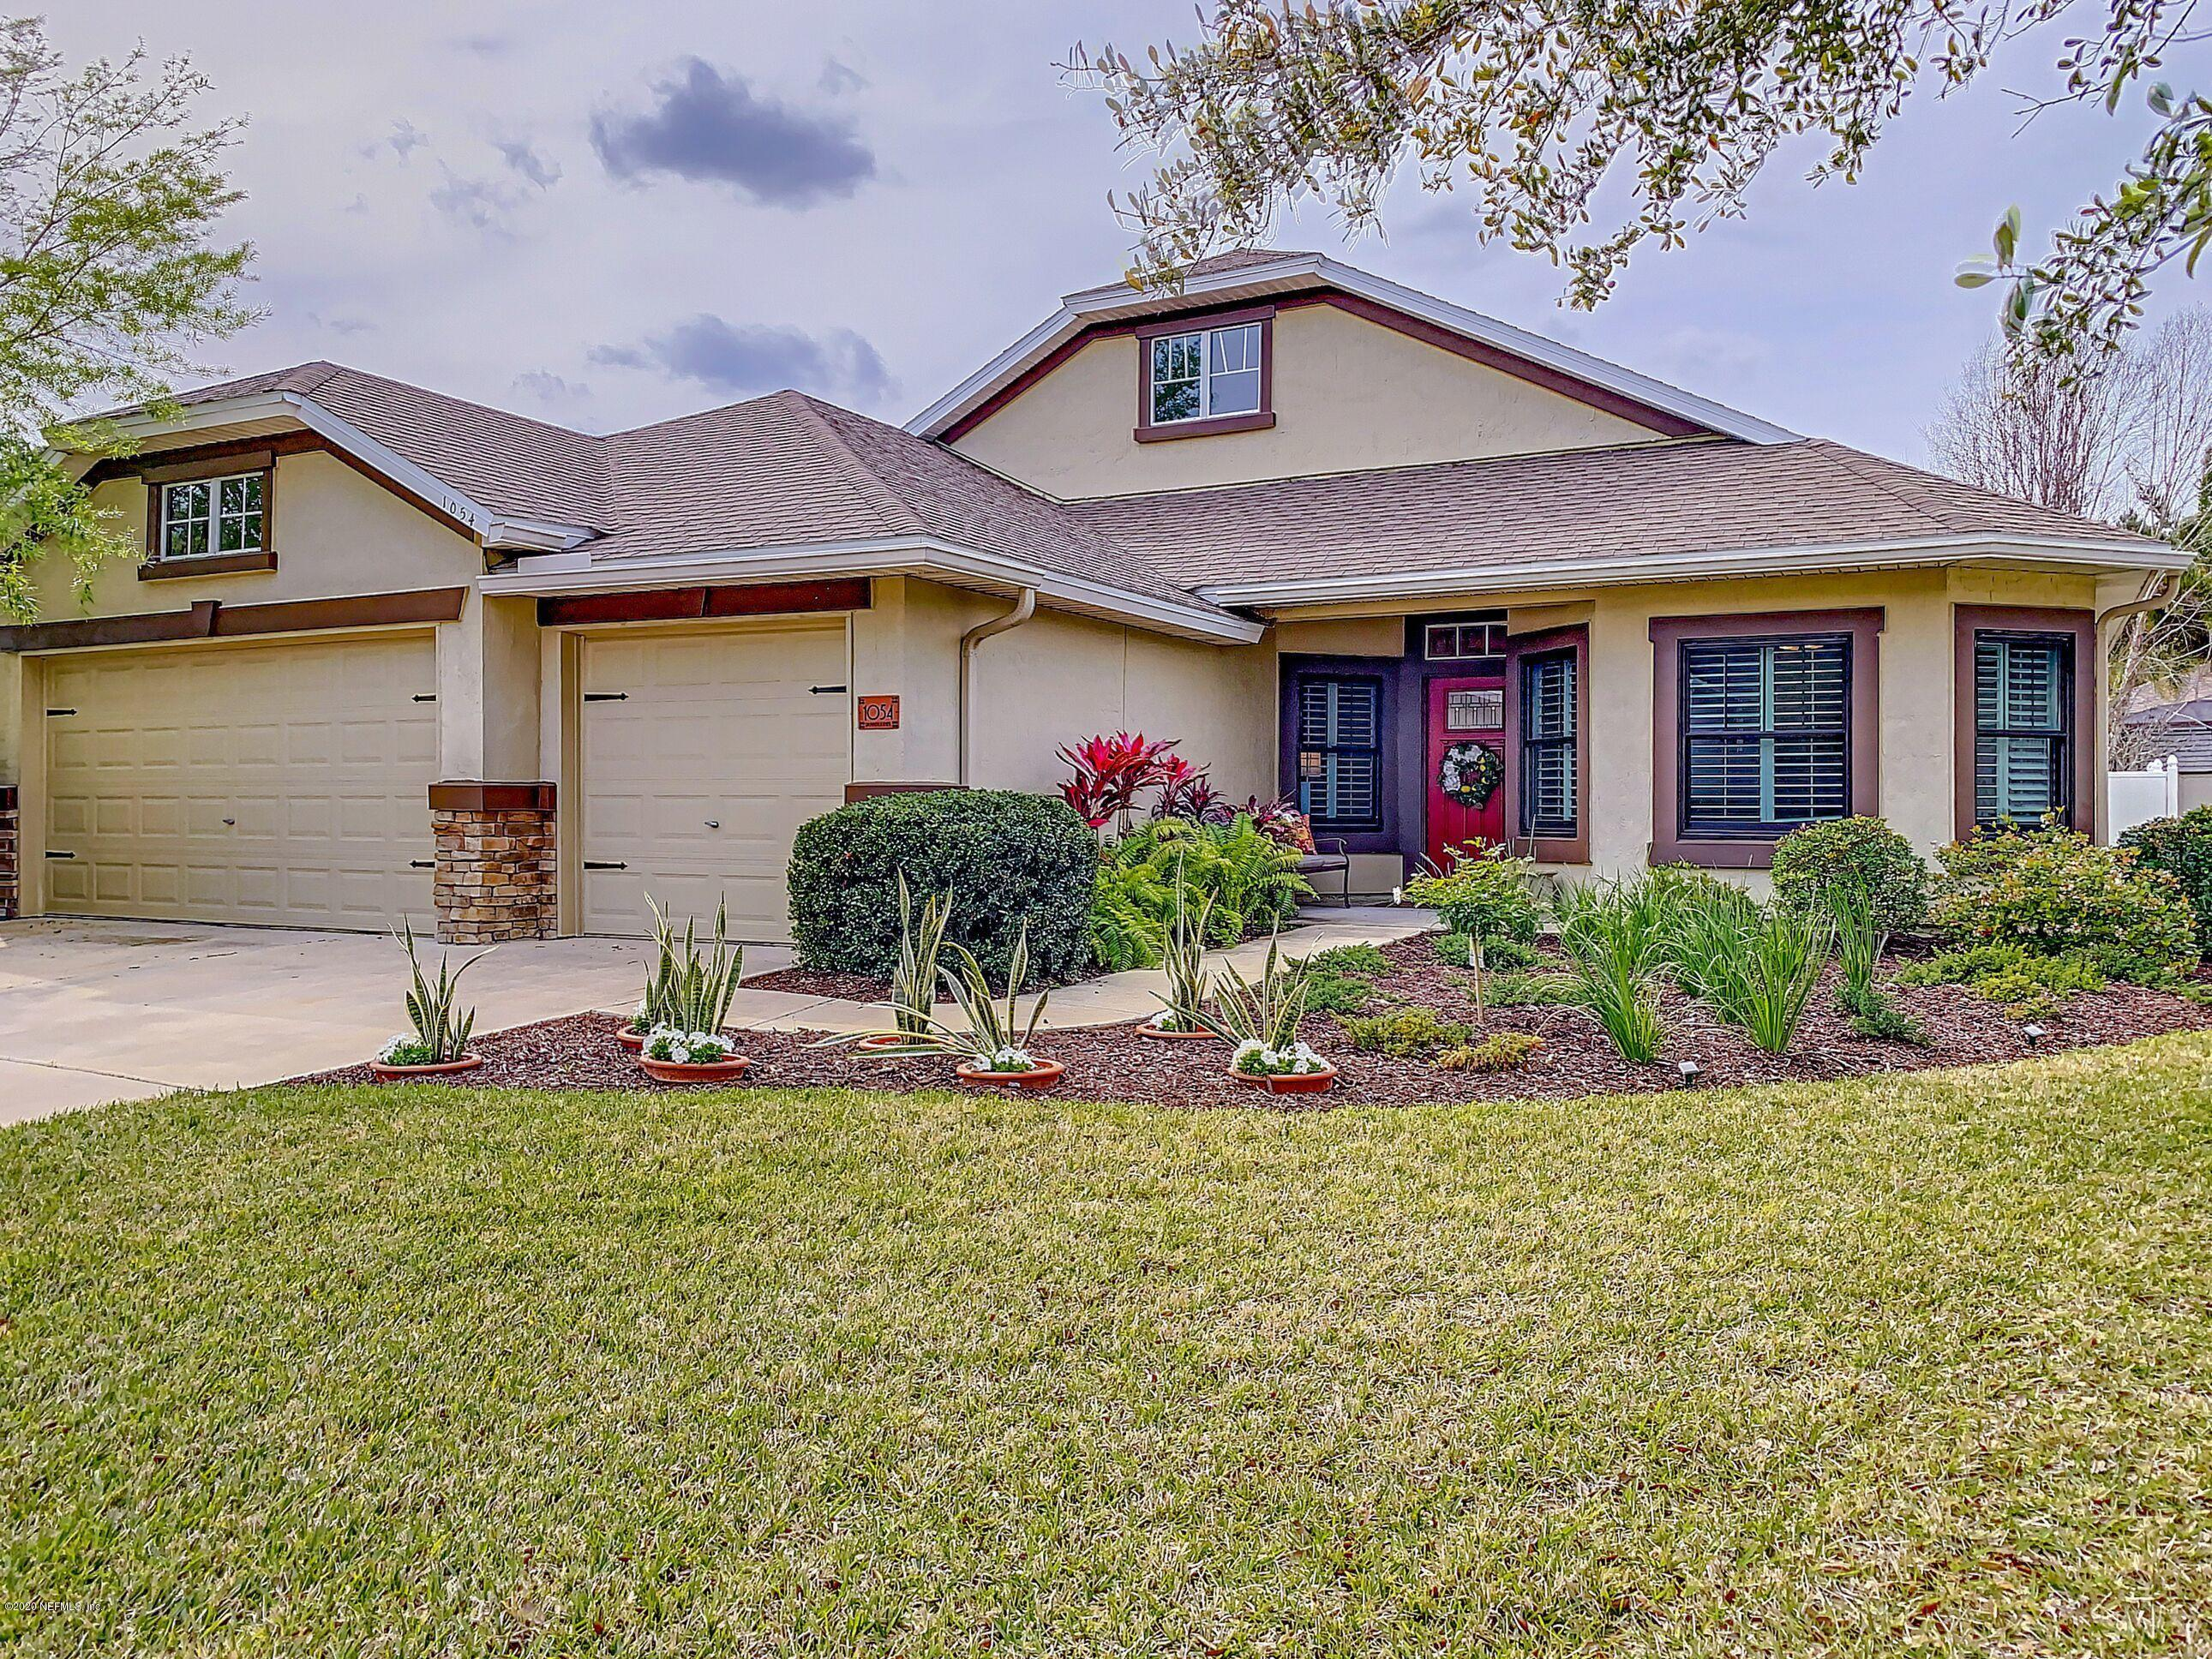 1054 DRAKEFEATHER, ORANGE PARK, FLORIDA 32065, 4 Bedrooms Bedrooms, ,2 BathroomsBathrooms,Residential,For sale,DRAKEFEATHER,1041766